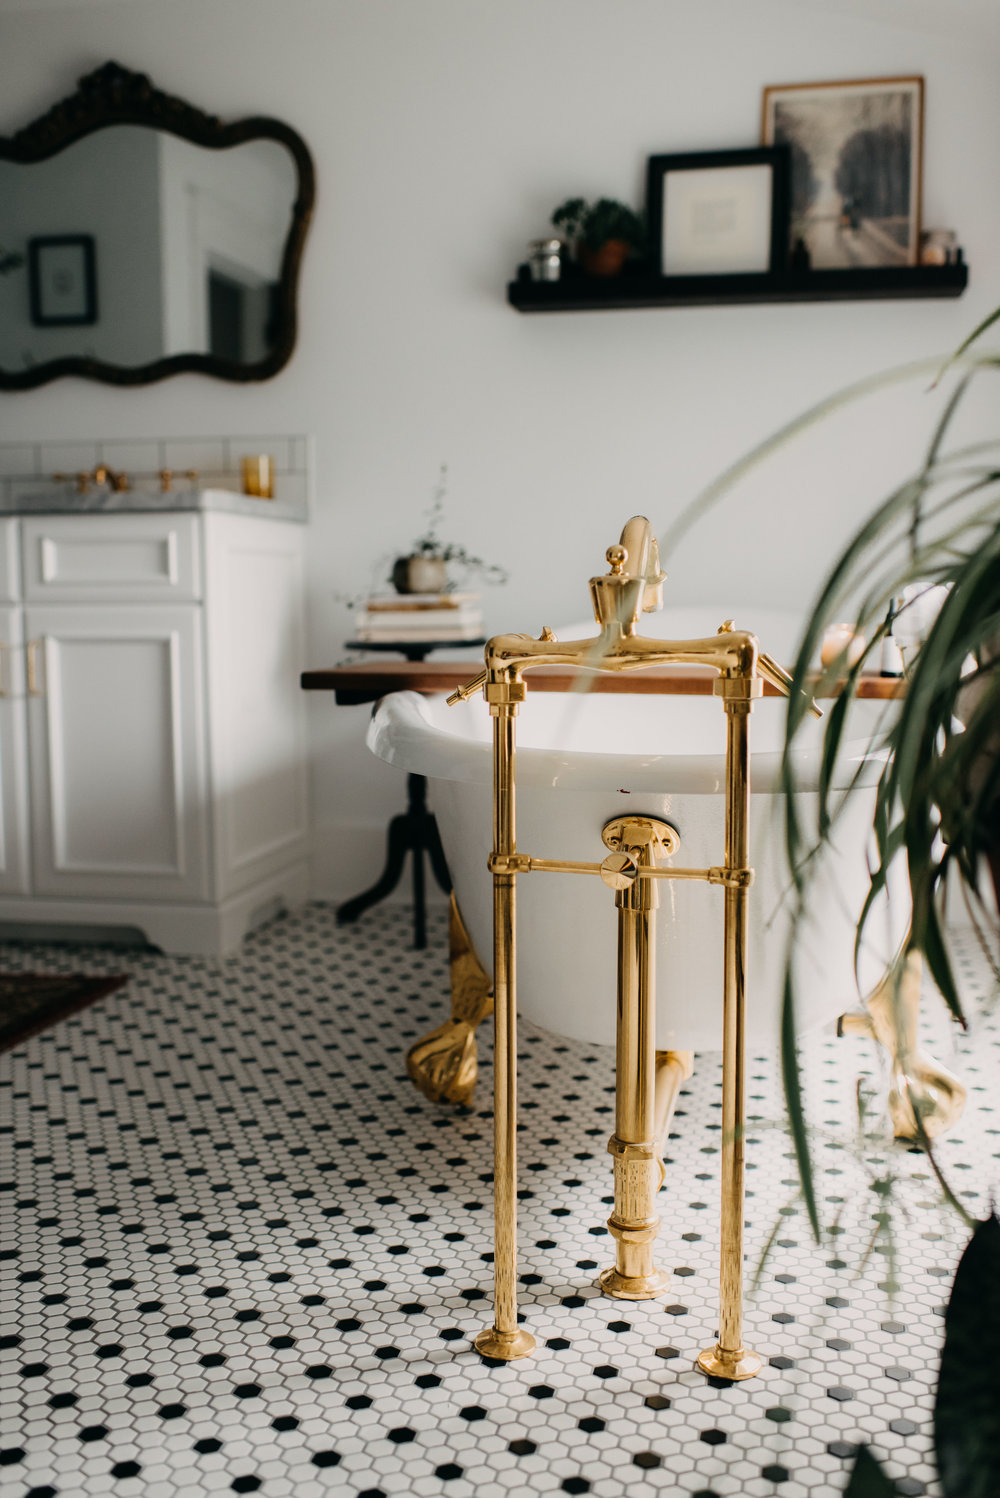 clawfoot tub with brass fixtures